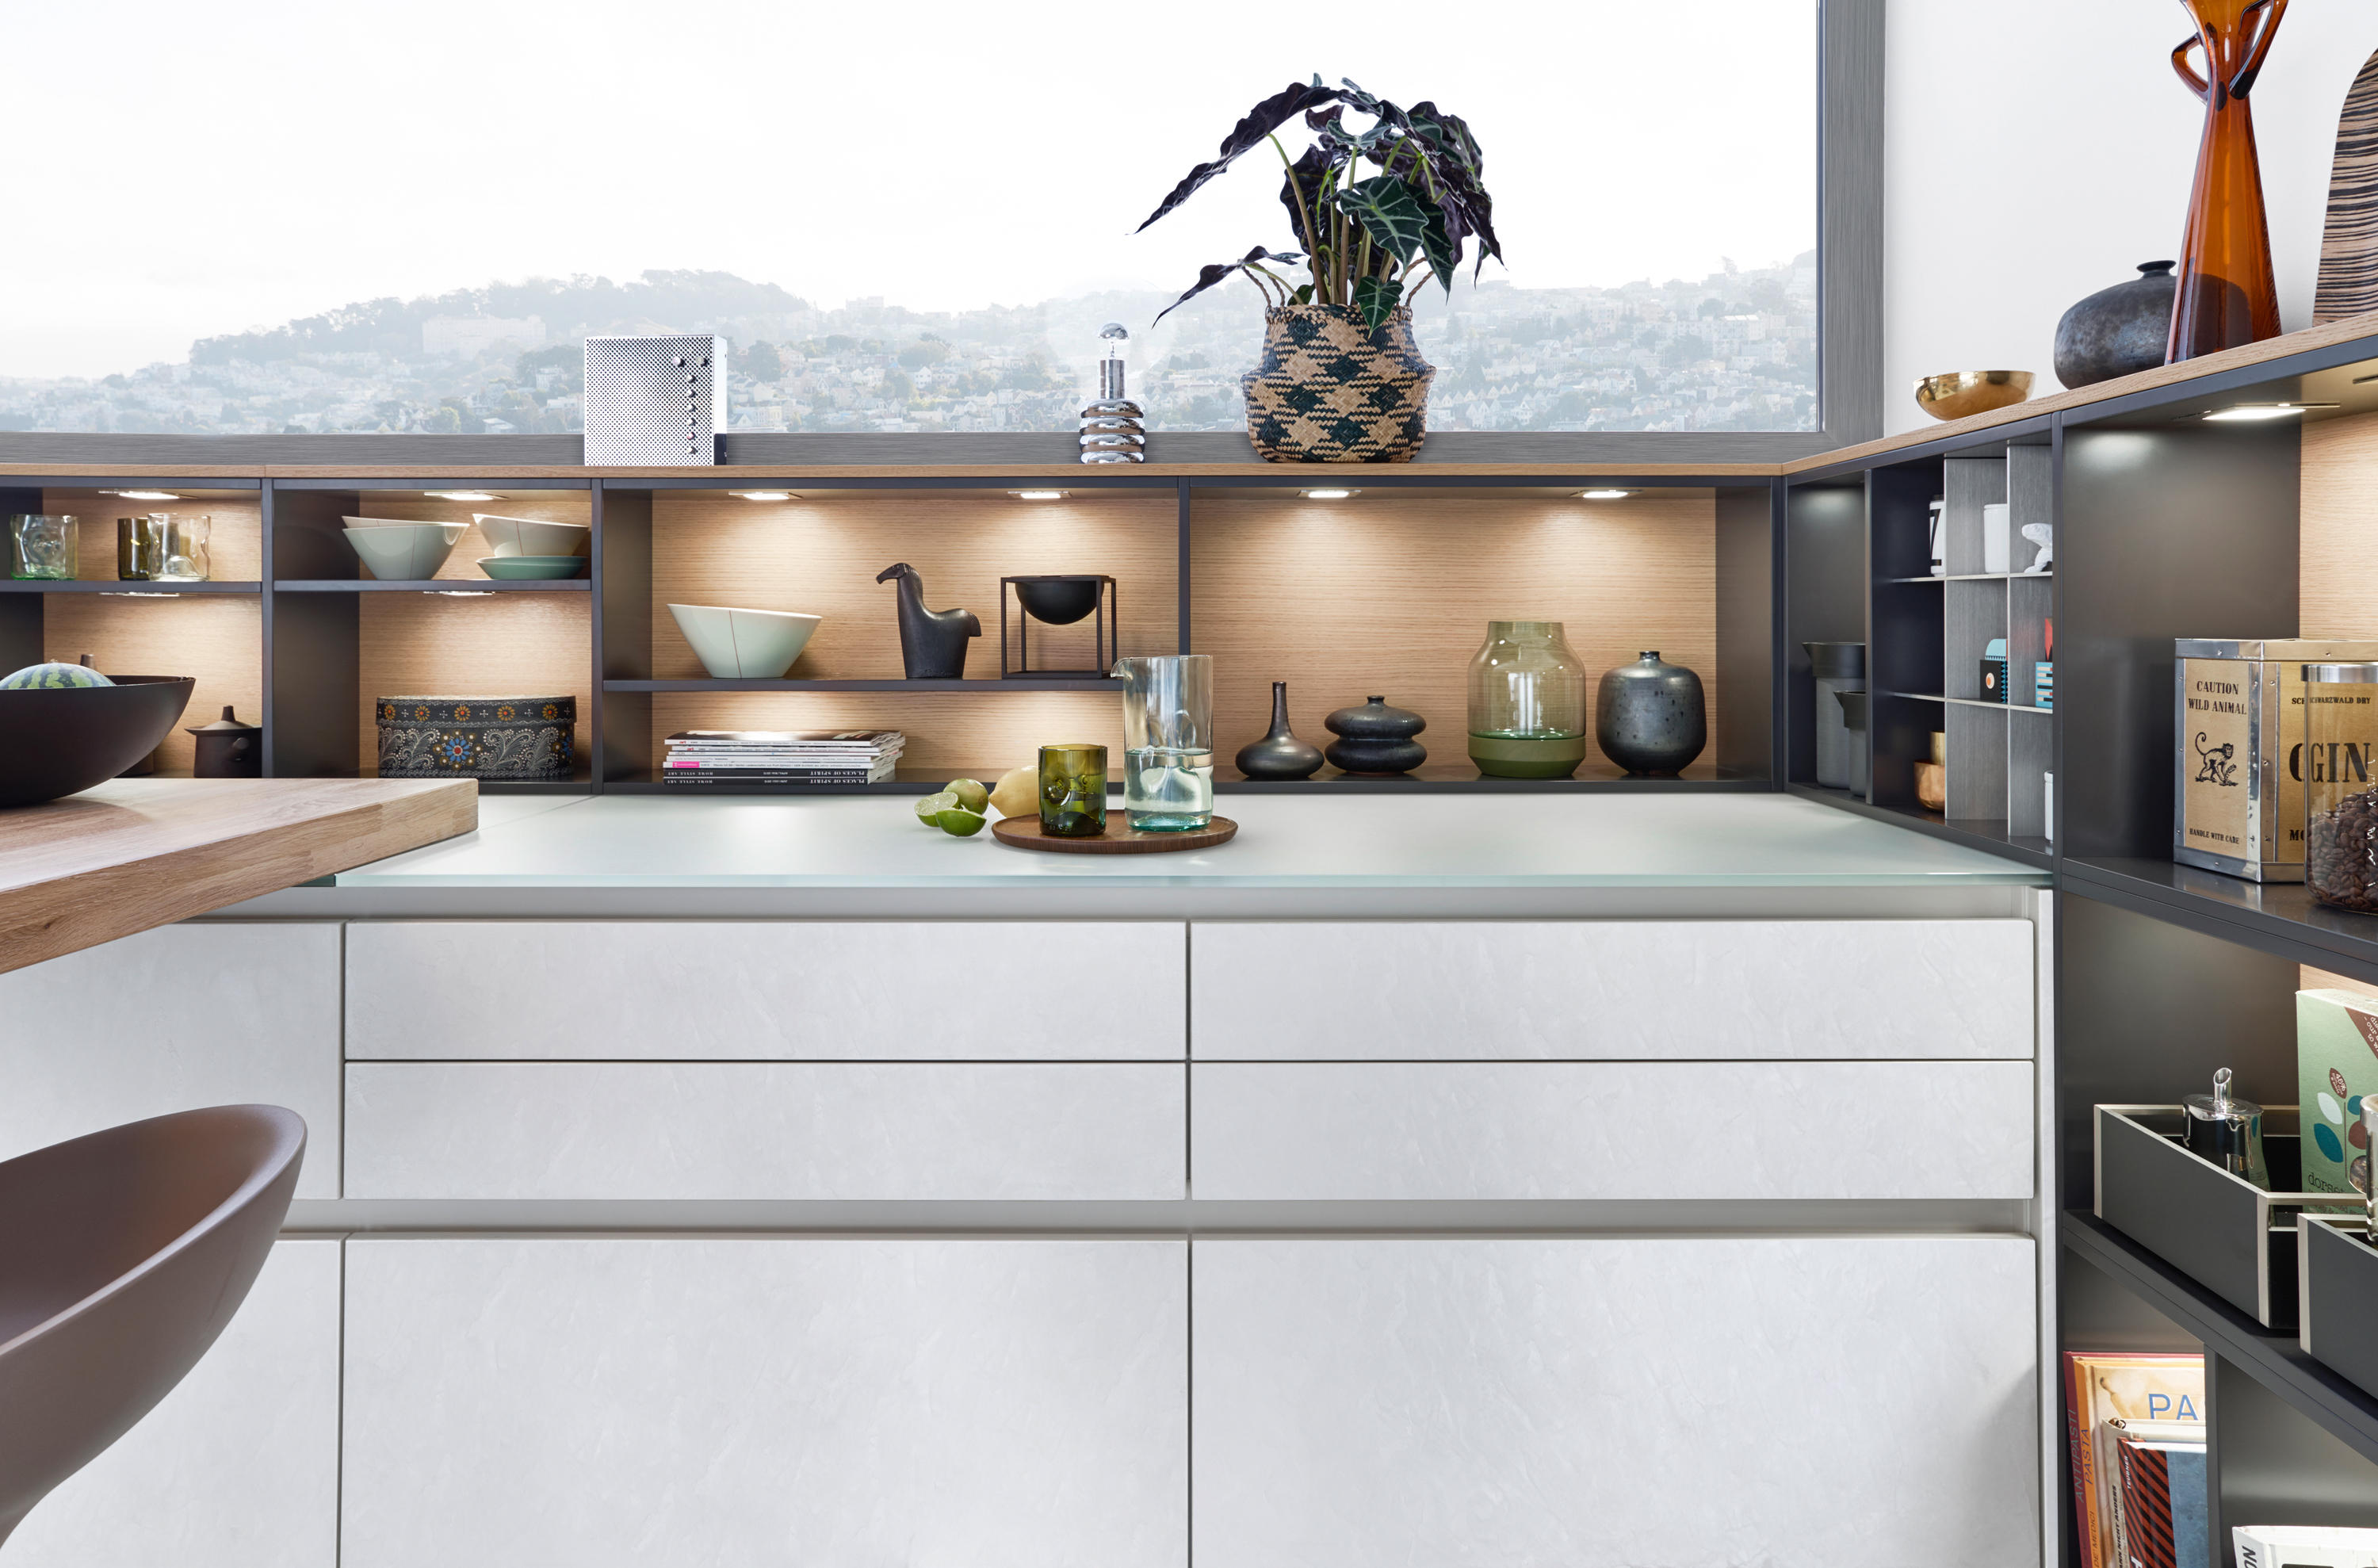 CLASSIC-FS   TOPOS   CONCRETE-C - Fitted kitchens from Leicht ...   {Classic küchen 62}